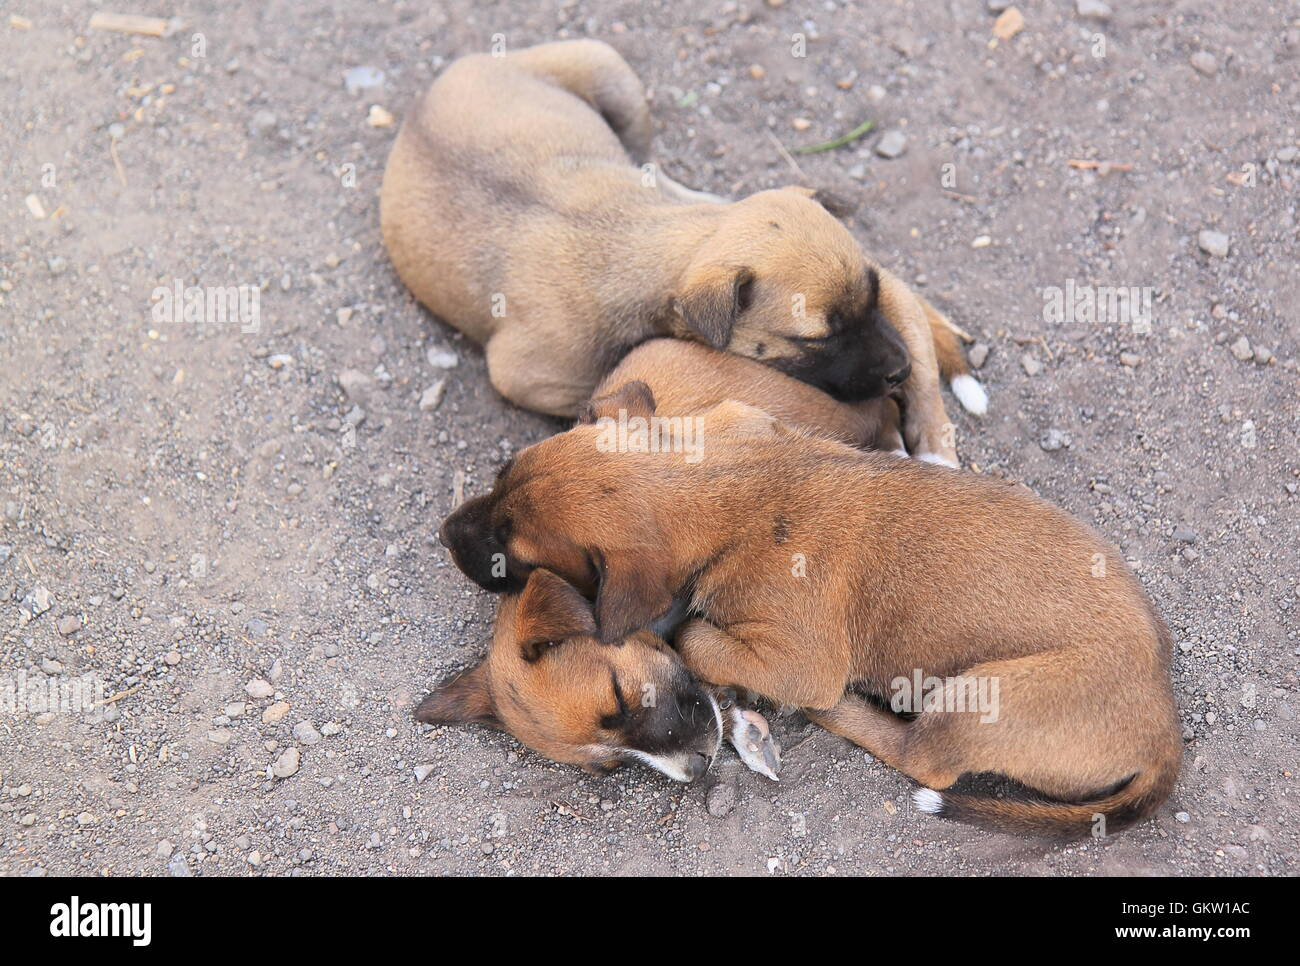 Baby dogs sleeping in Indonesia - Stock Image